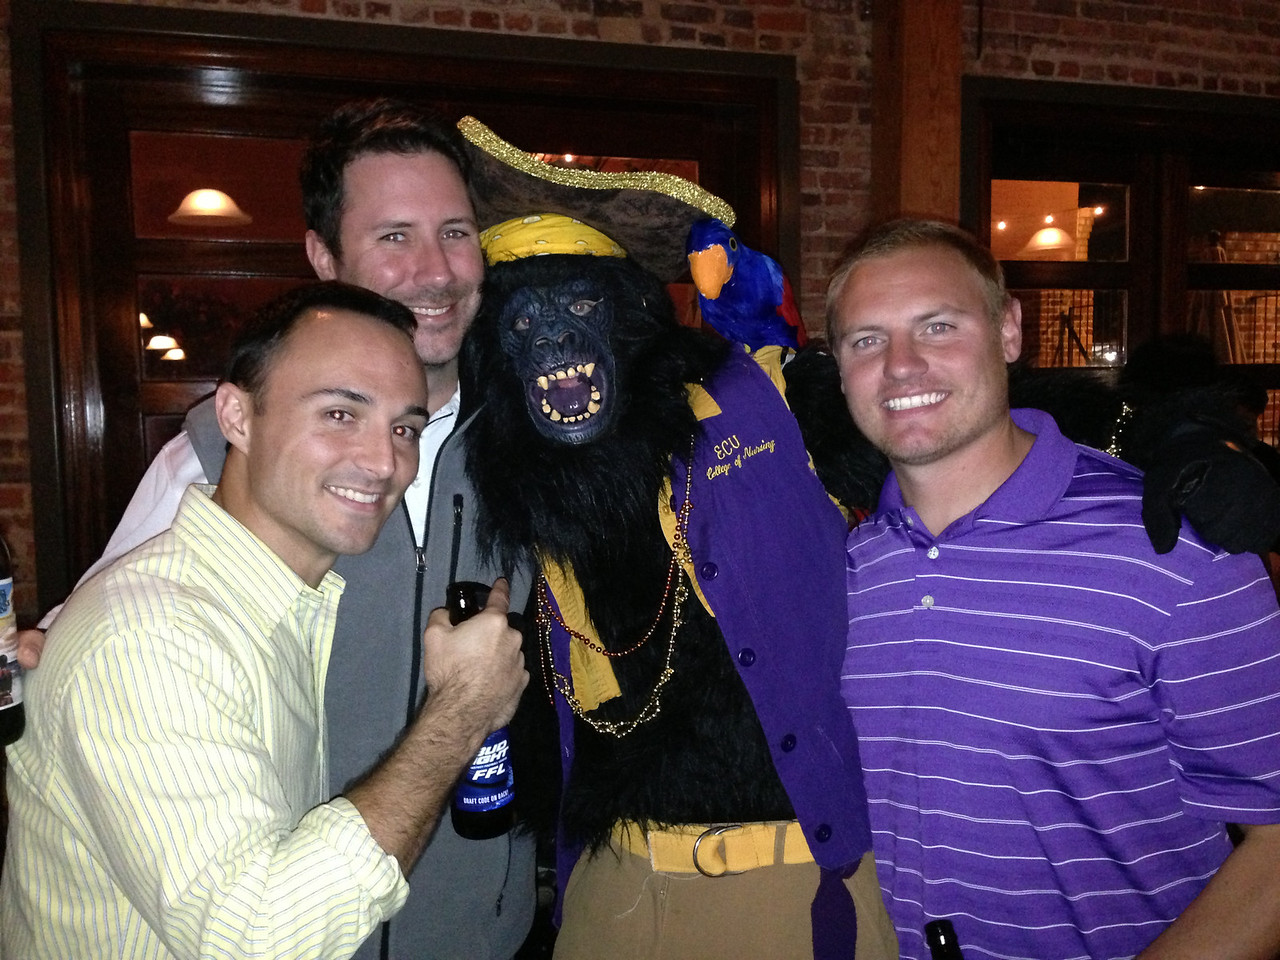 10/27 ECU vs Navy Chris, Preston, JG